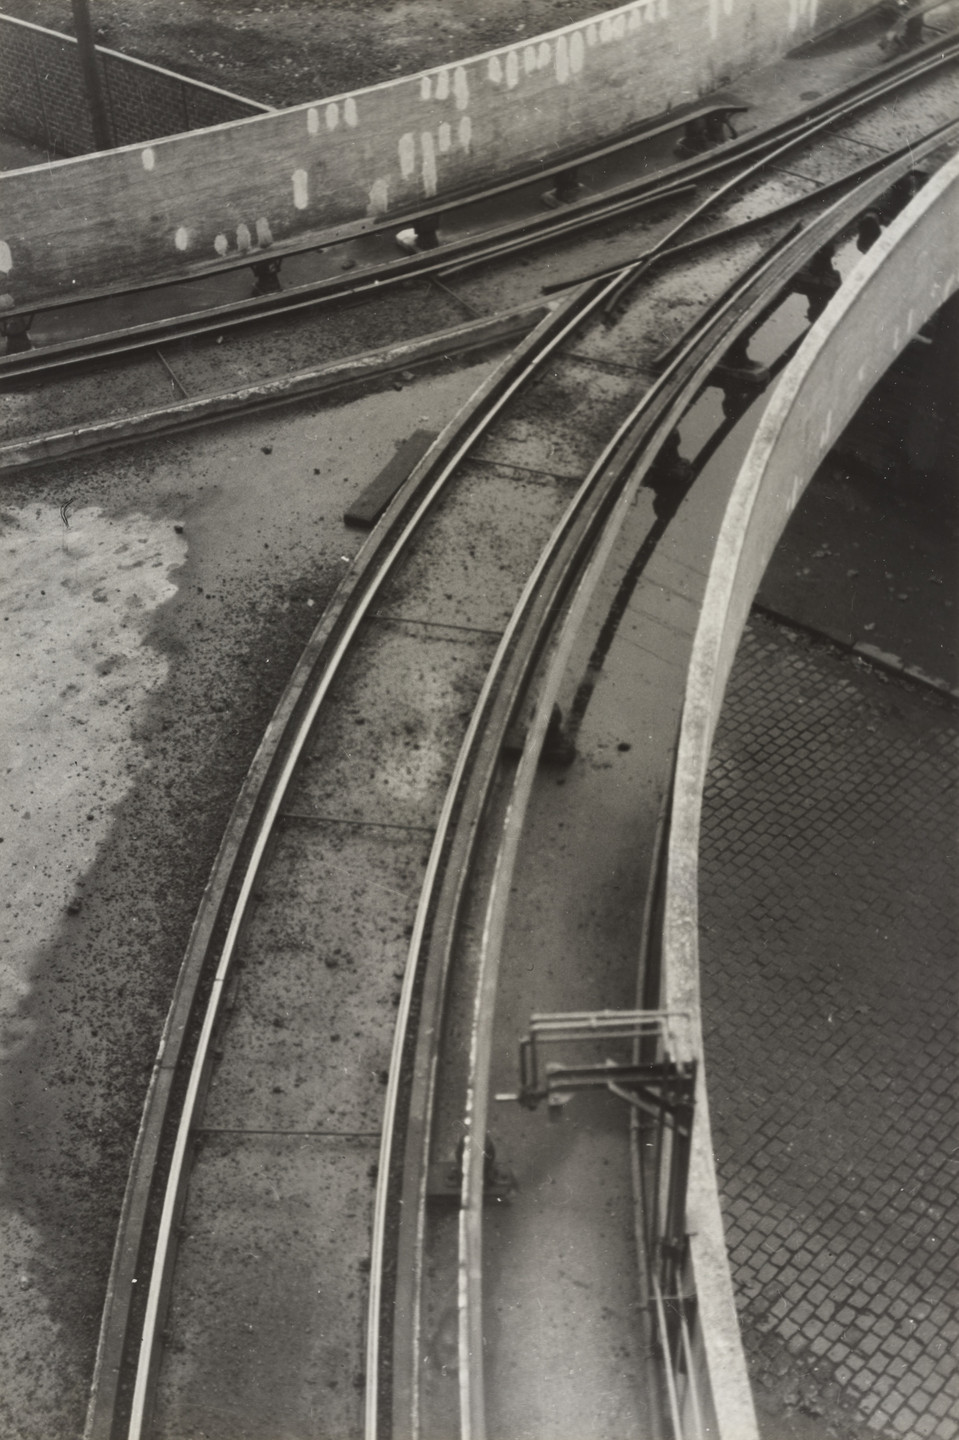 Germaine Krull. Rails. c. 1927